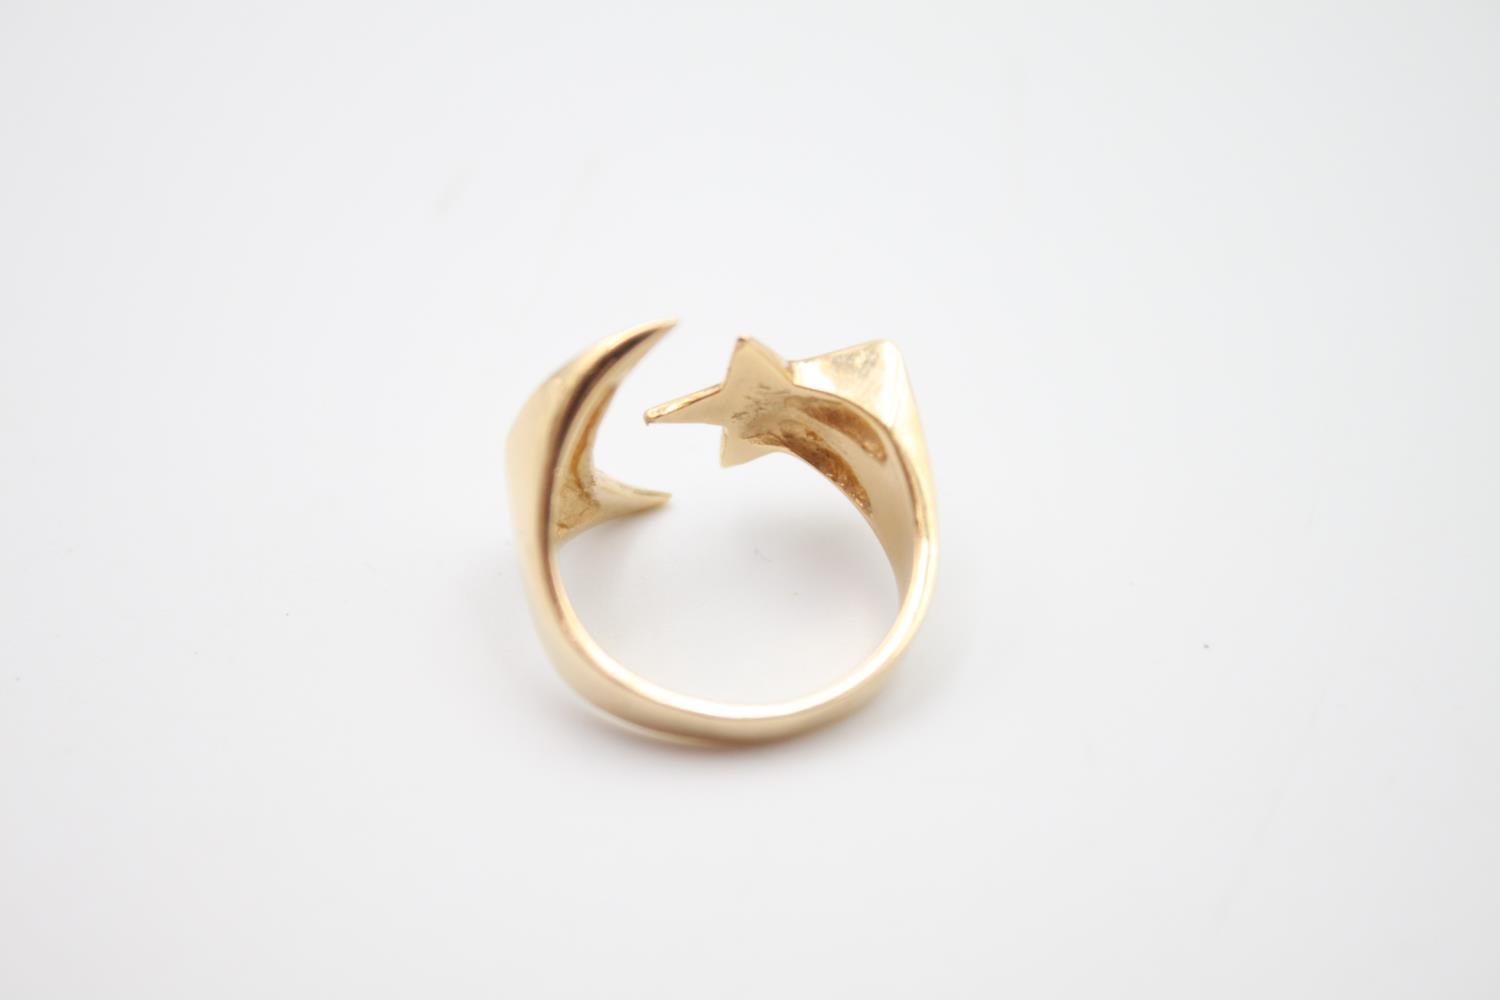 14ct gold moon and star signet style ring 4.8g Size K - Image 4 of 5